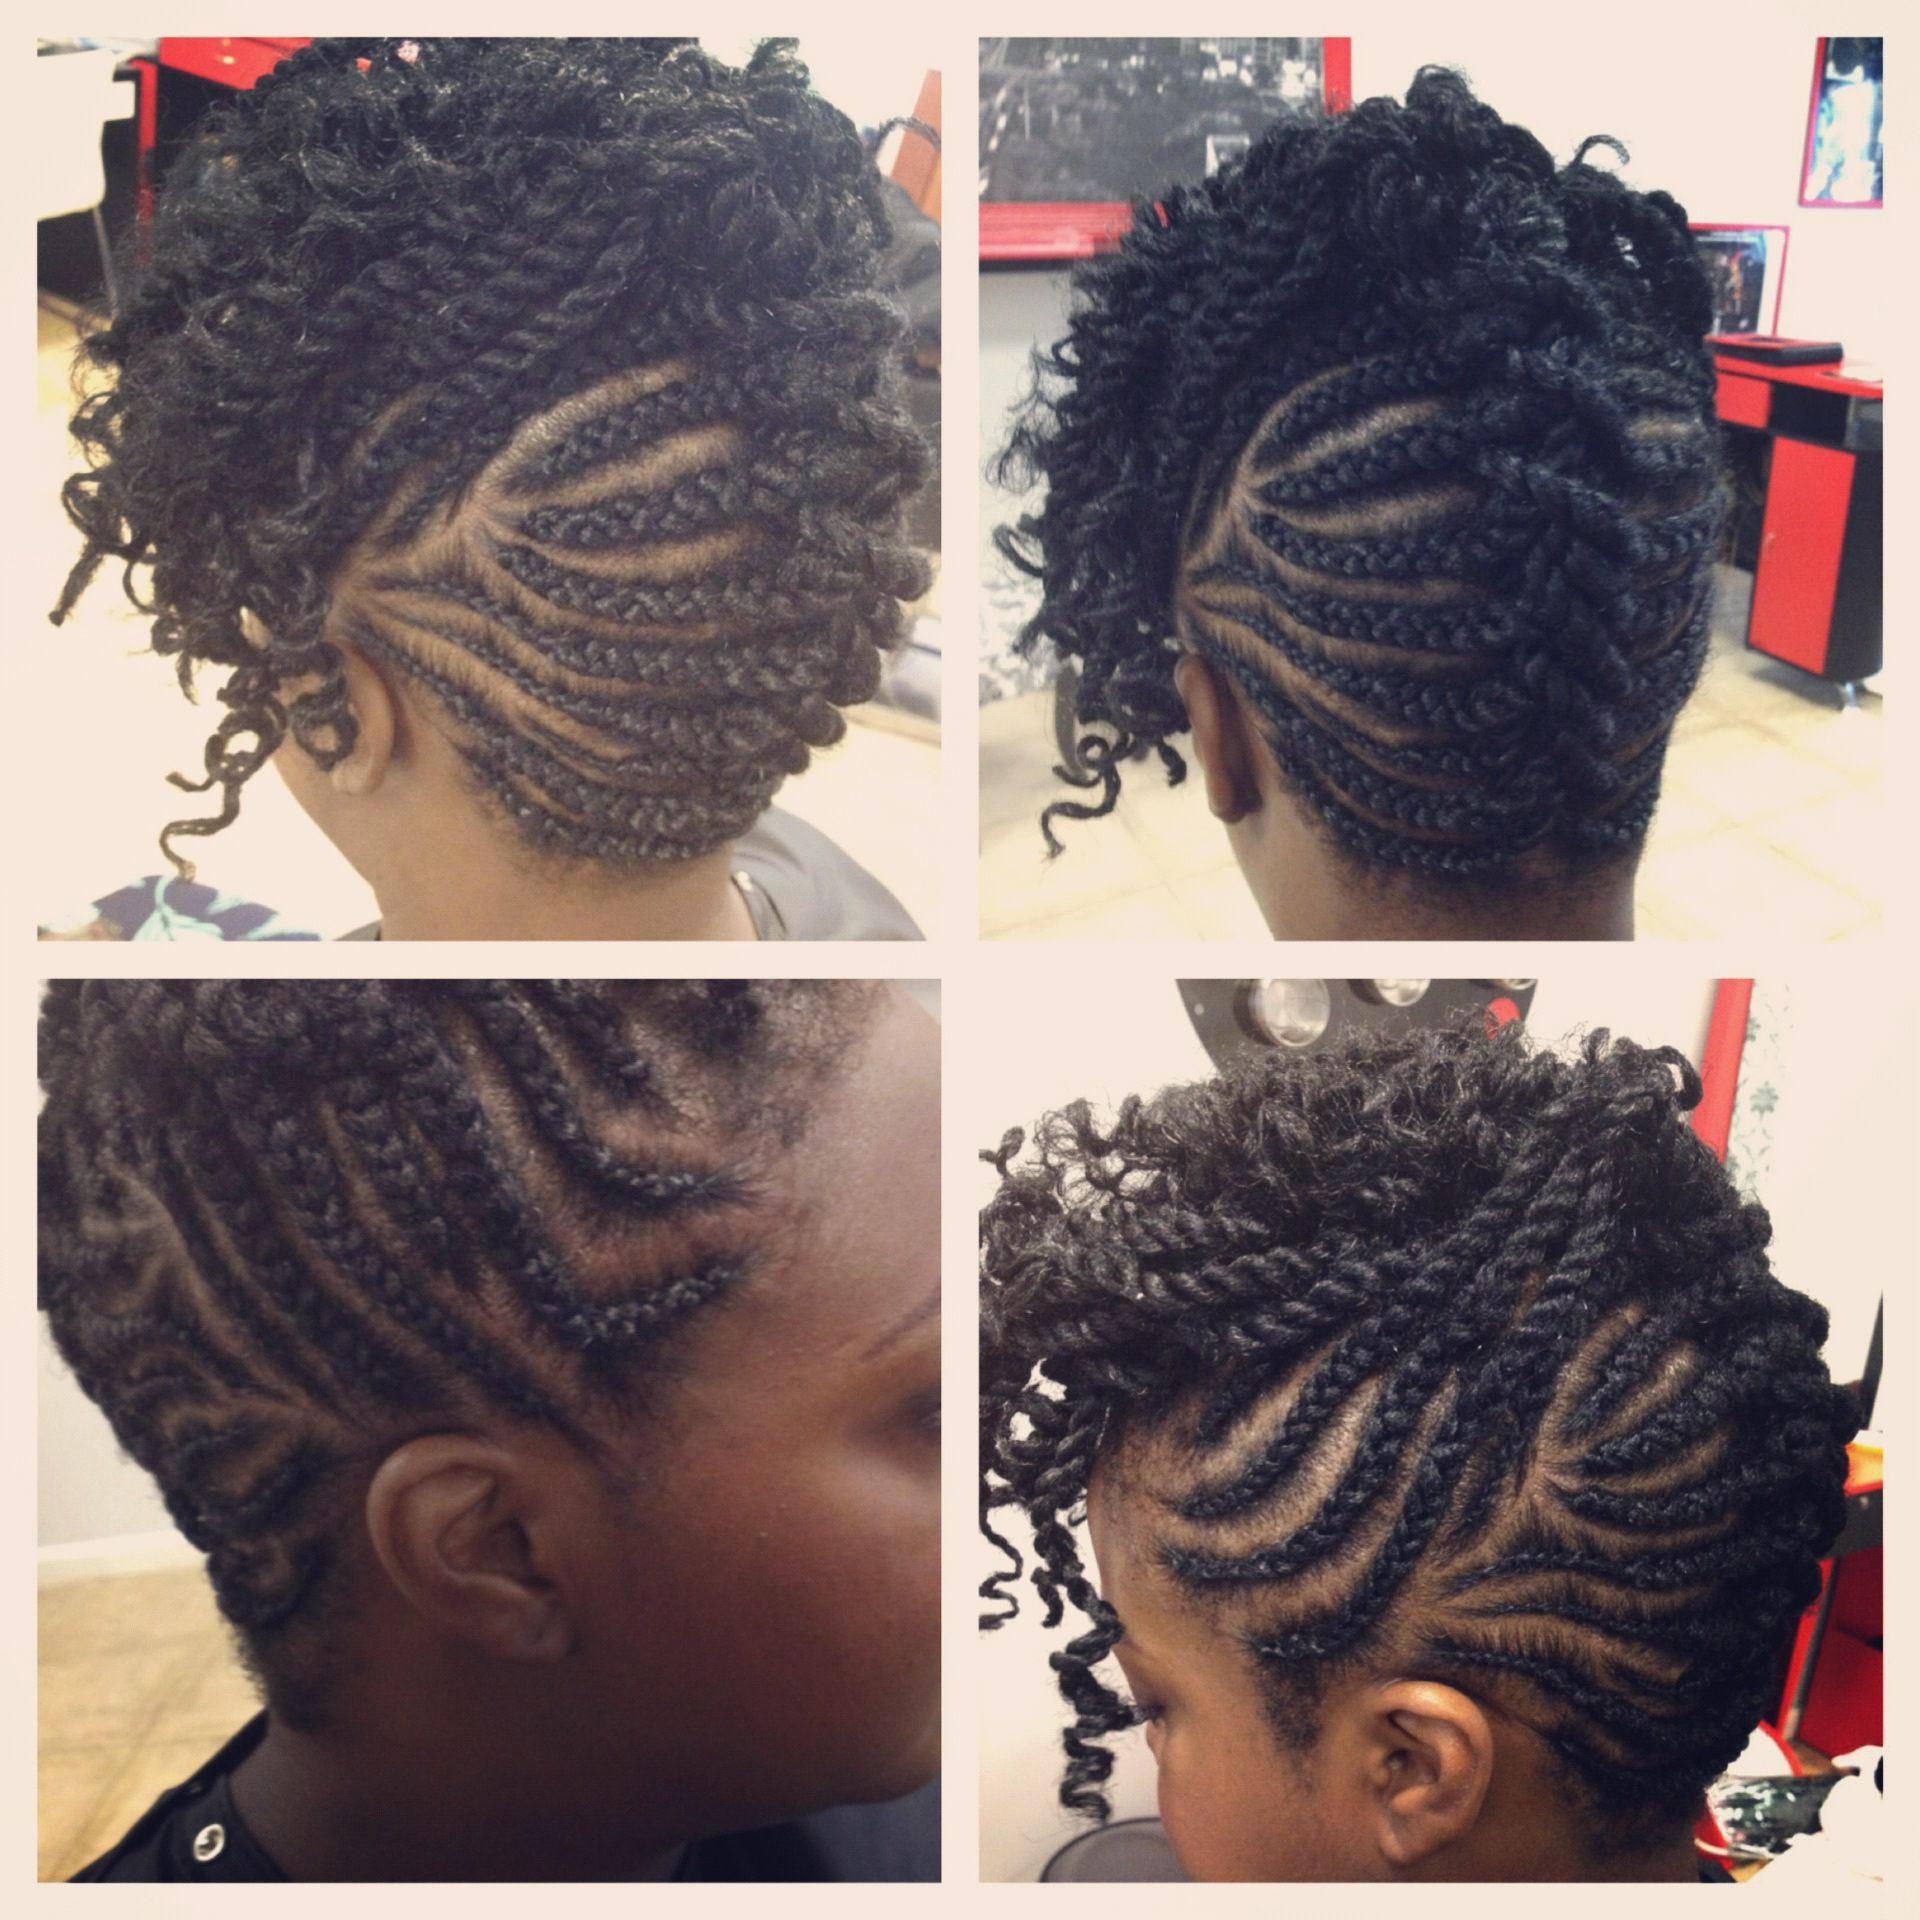 Mohawk Braids With Single Rope Twist Up Front (View 13 of 20)